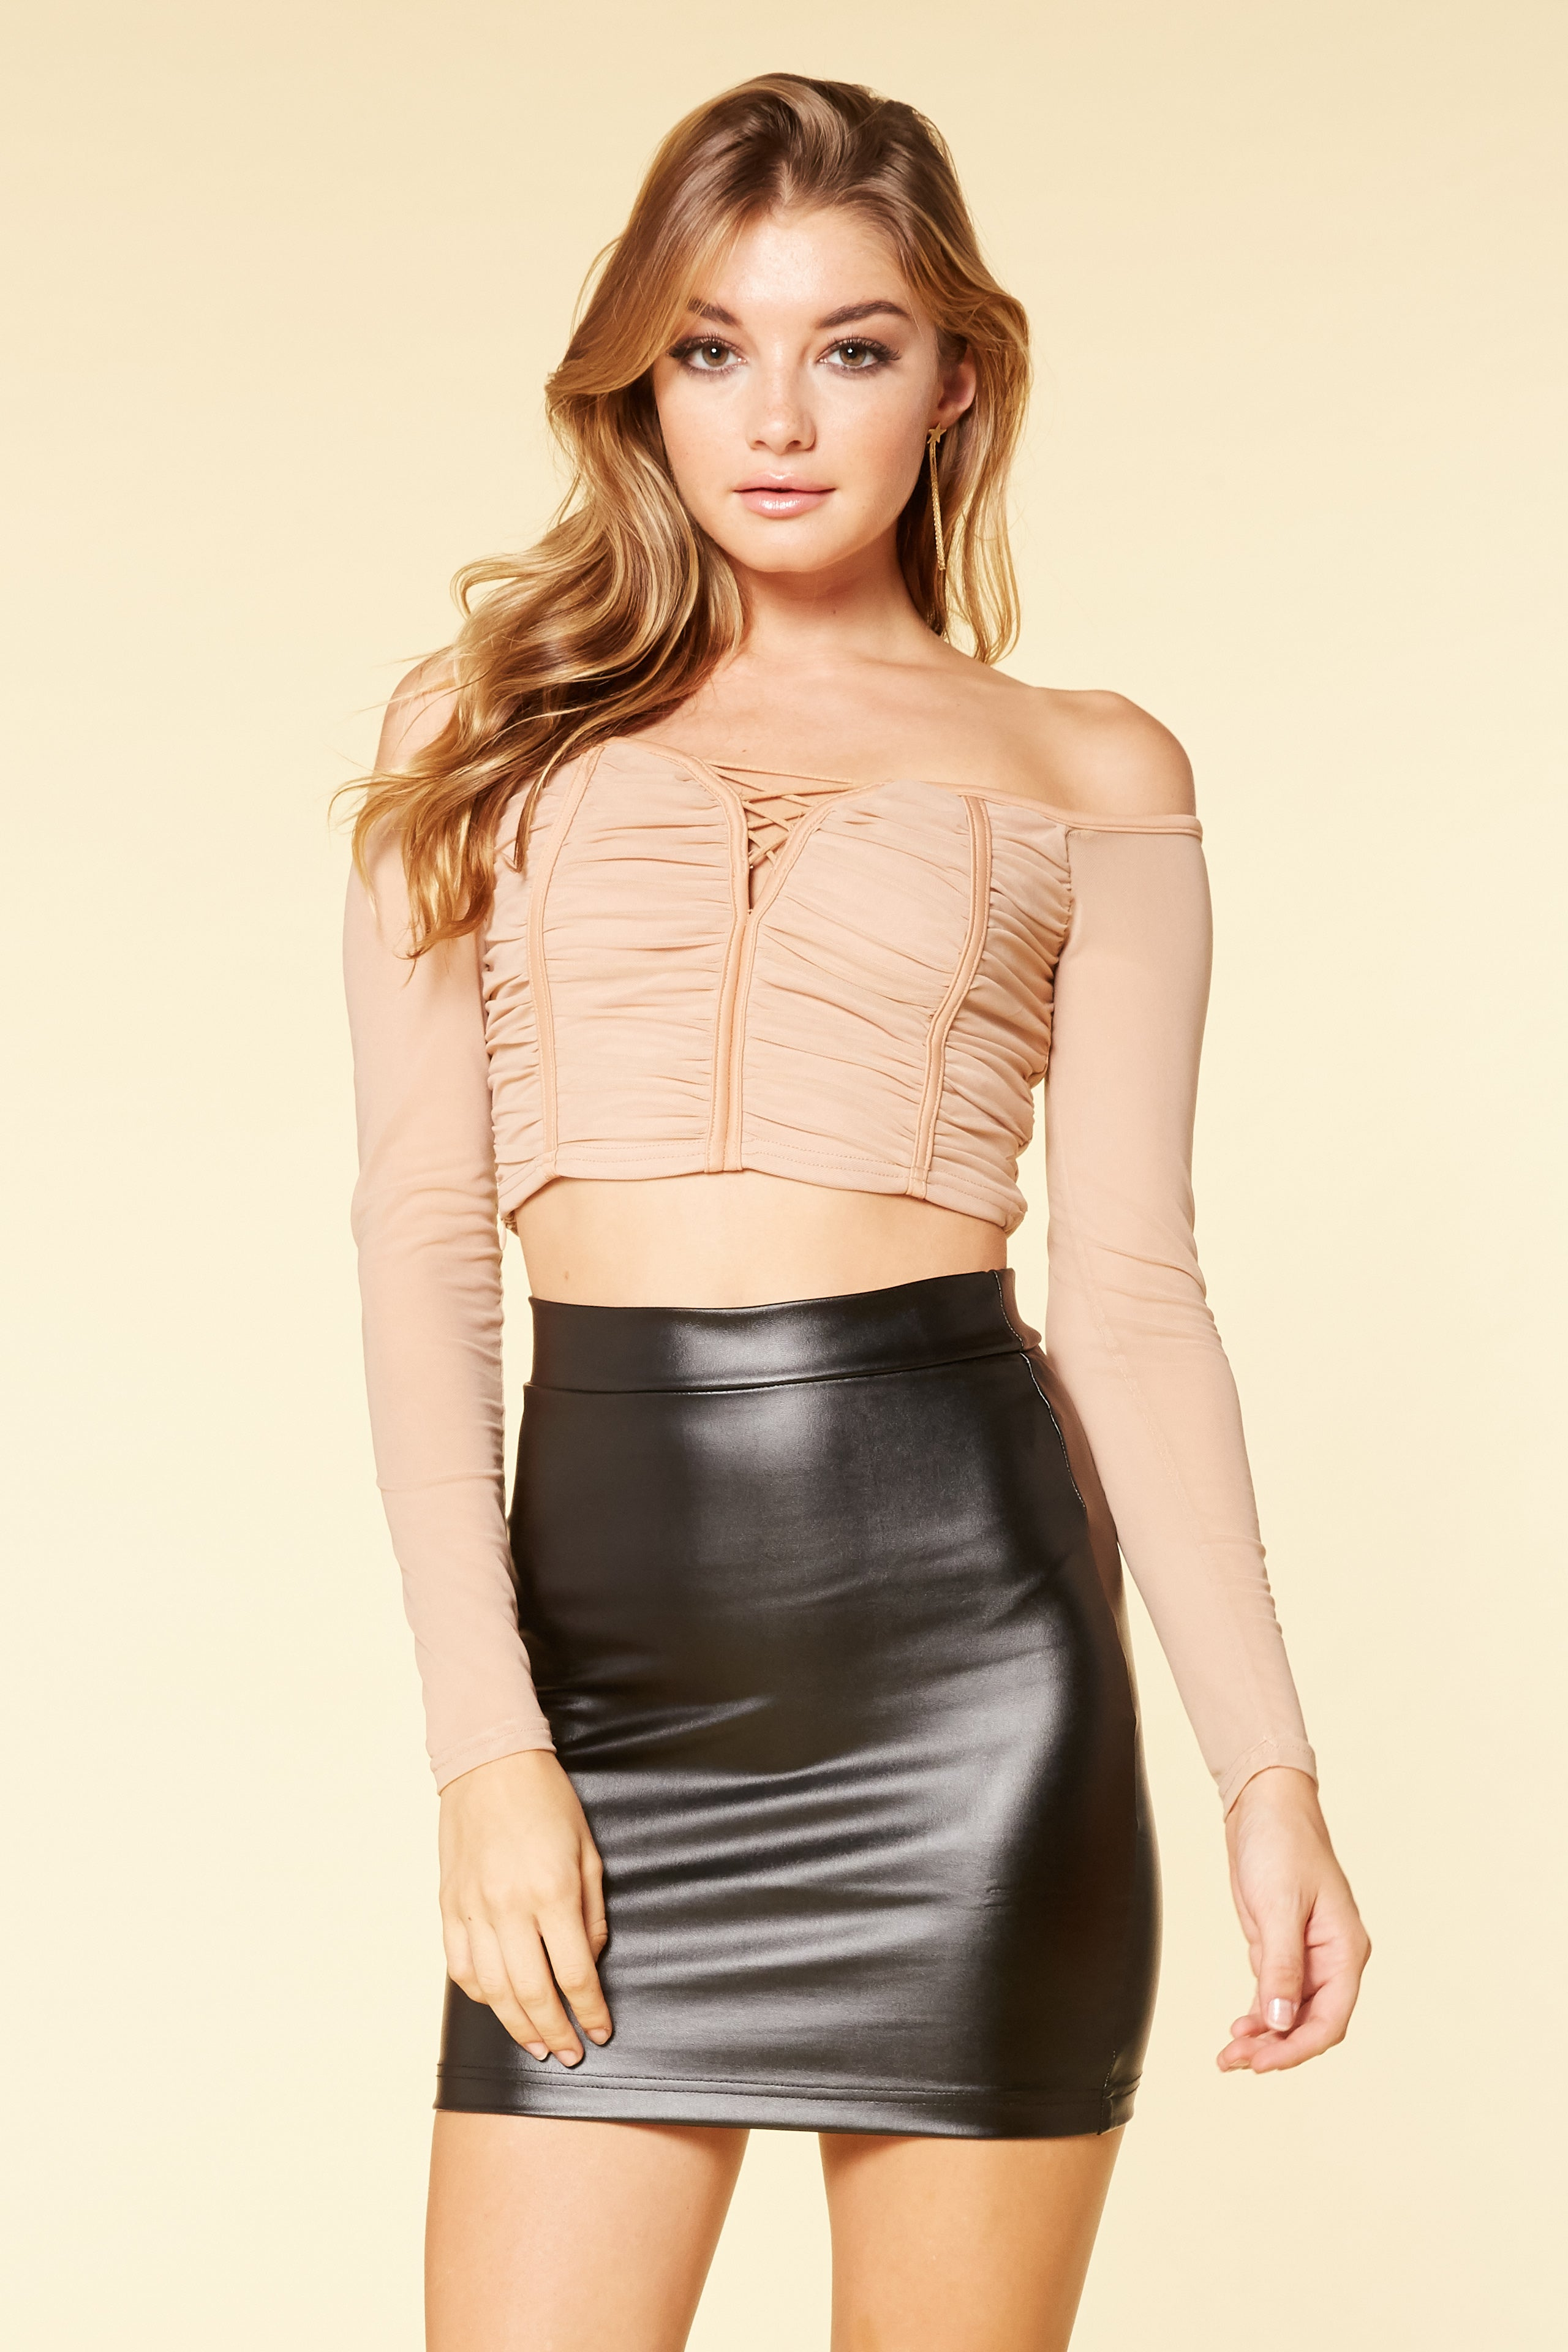 Have Mercy Mesh Crop Top - HoneyBum